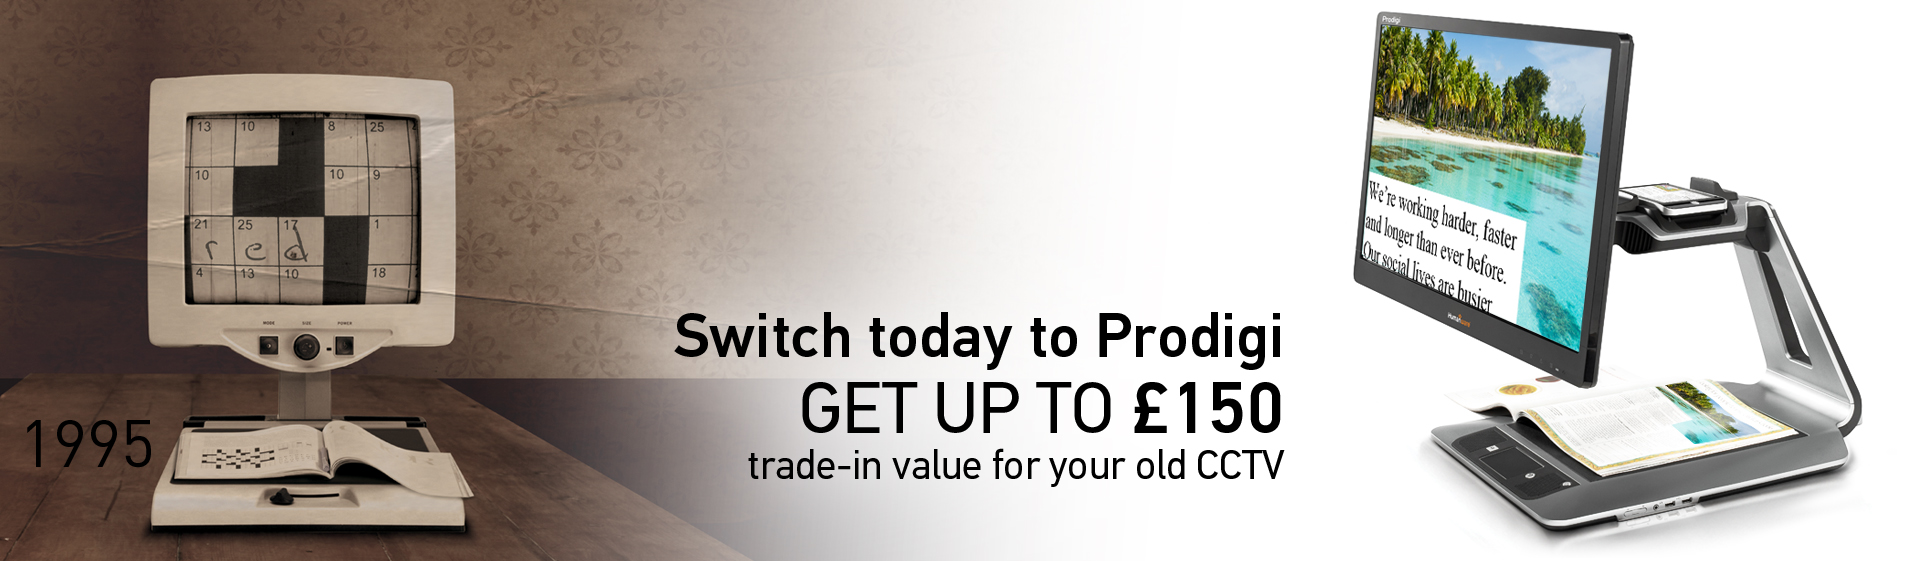 Switch today to Prodigi. GET UP TO £150 - trade-in value for your old CCTV